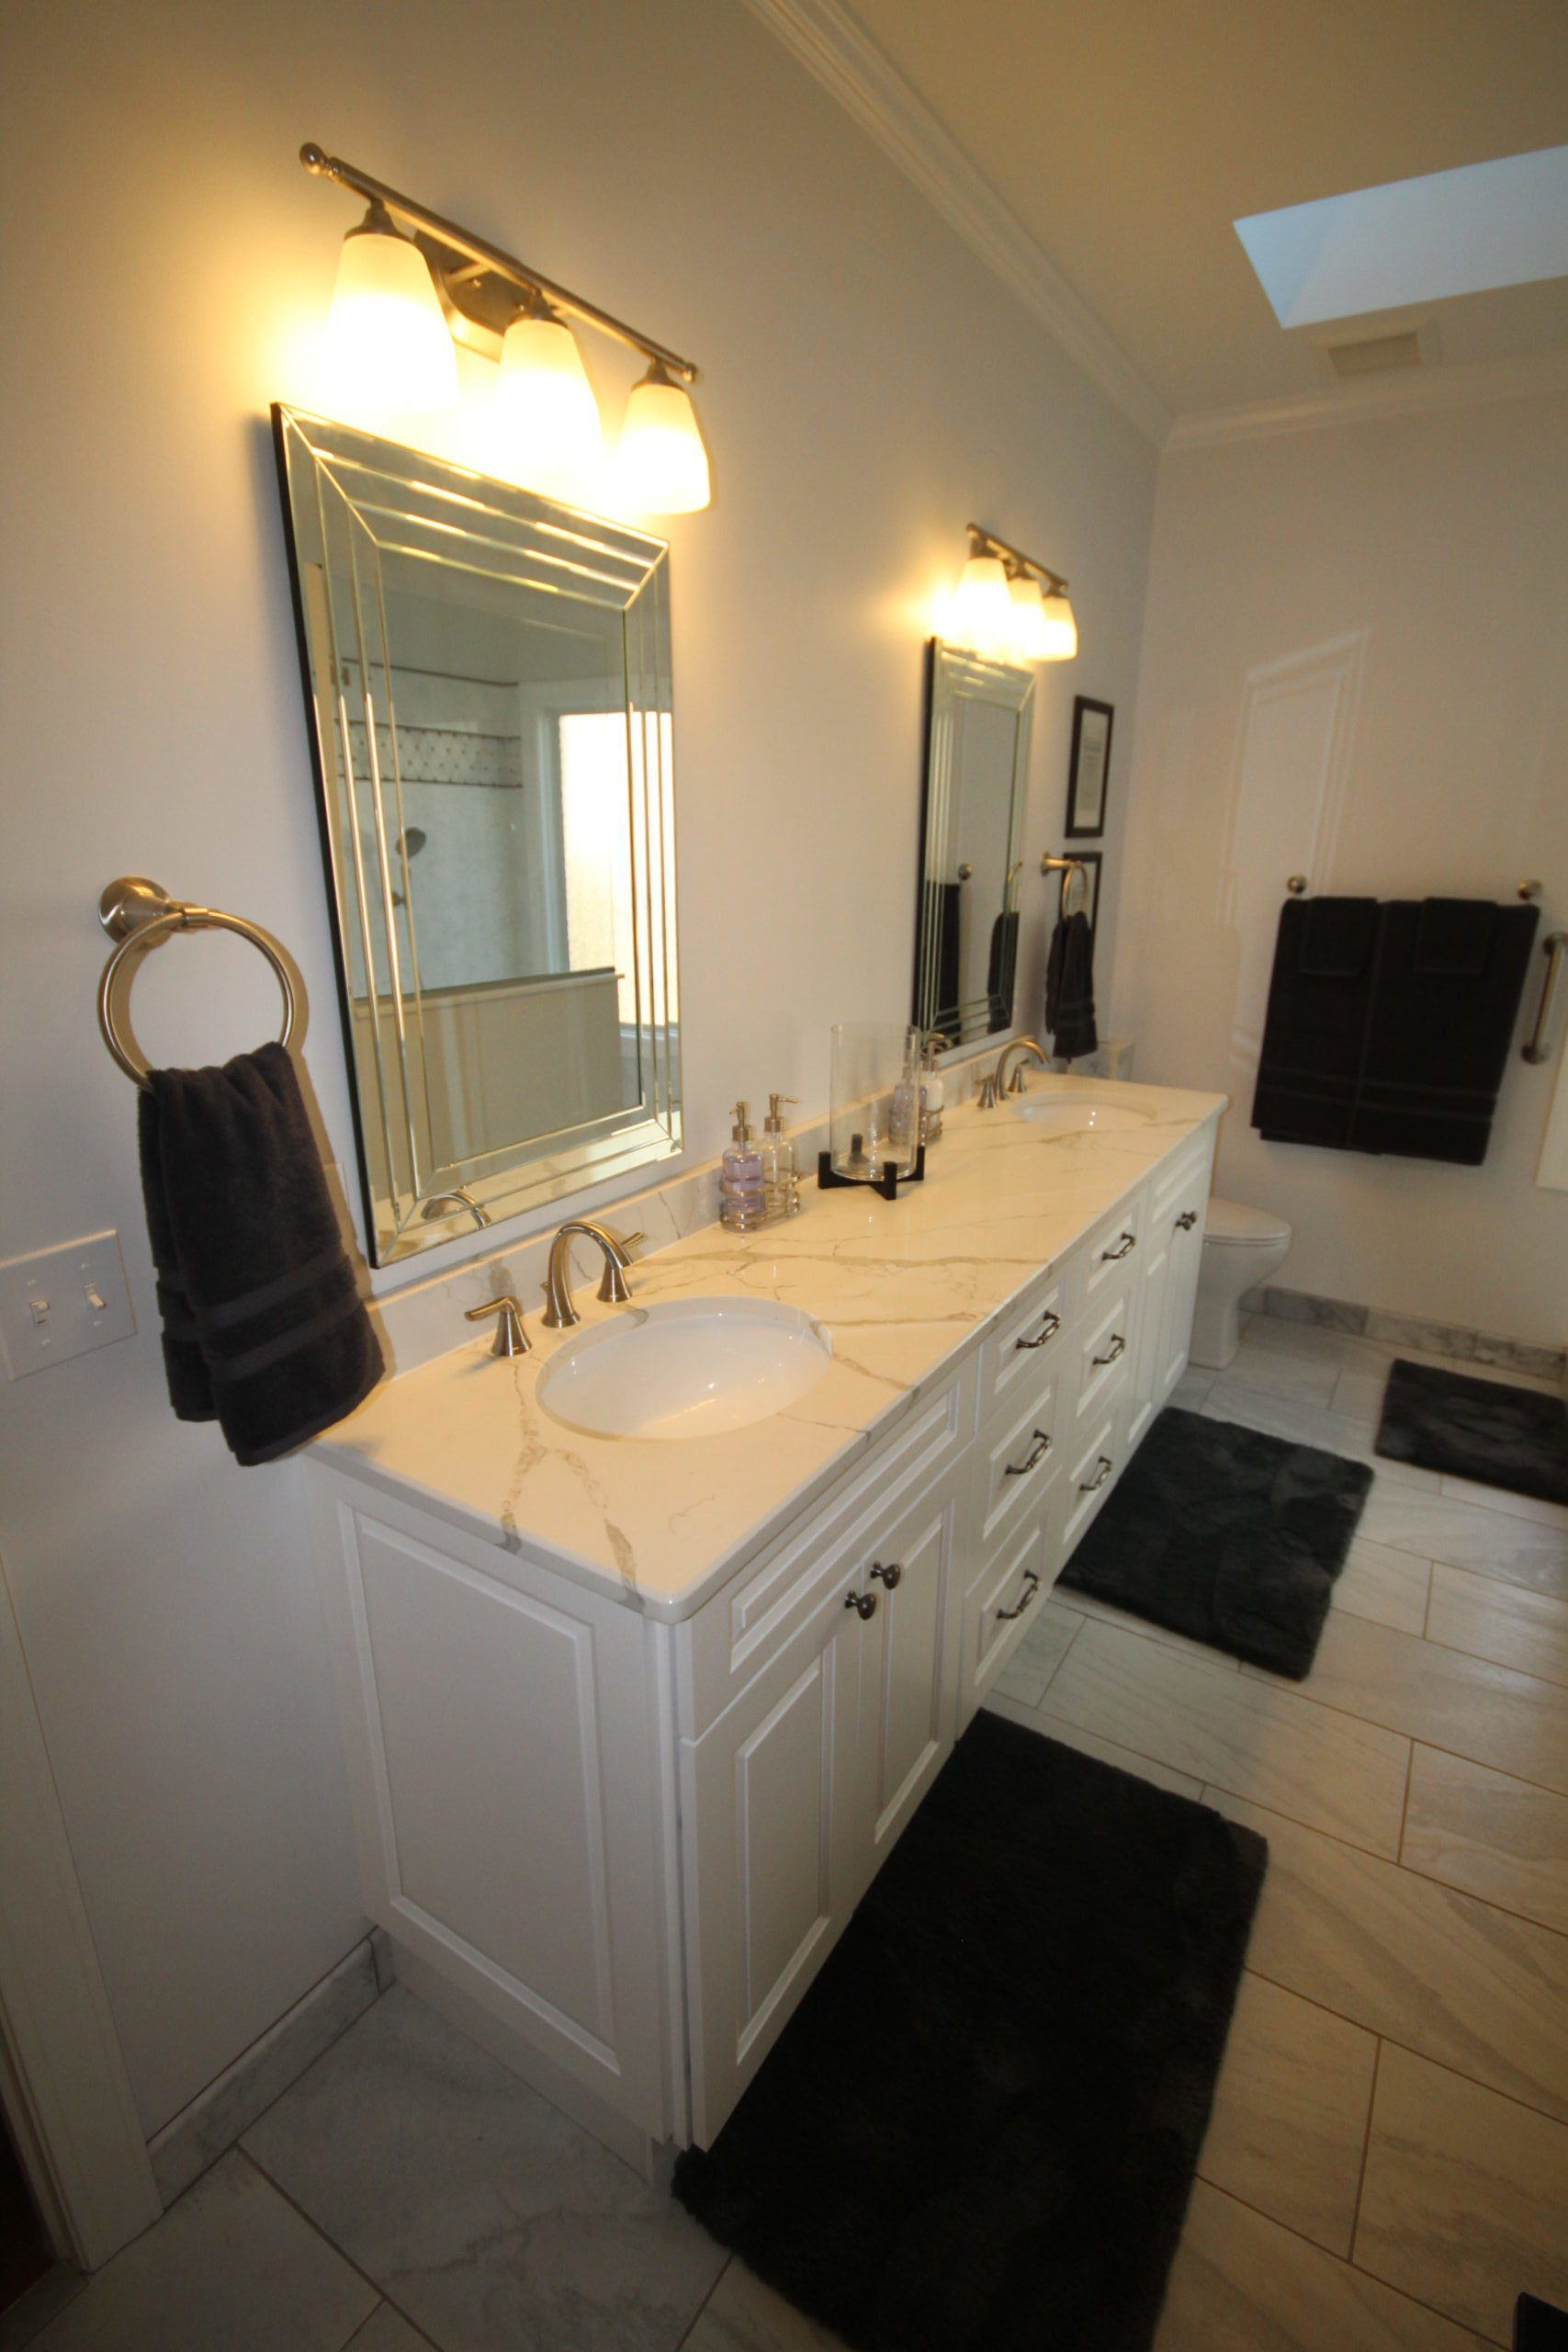 bathroom-remodeling-work-TAG-Builders-209-GV-Bathroom-Remodel-2-scaled-e1586518861938